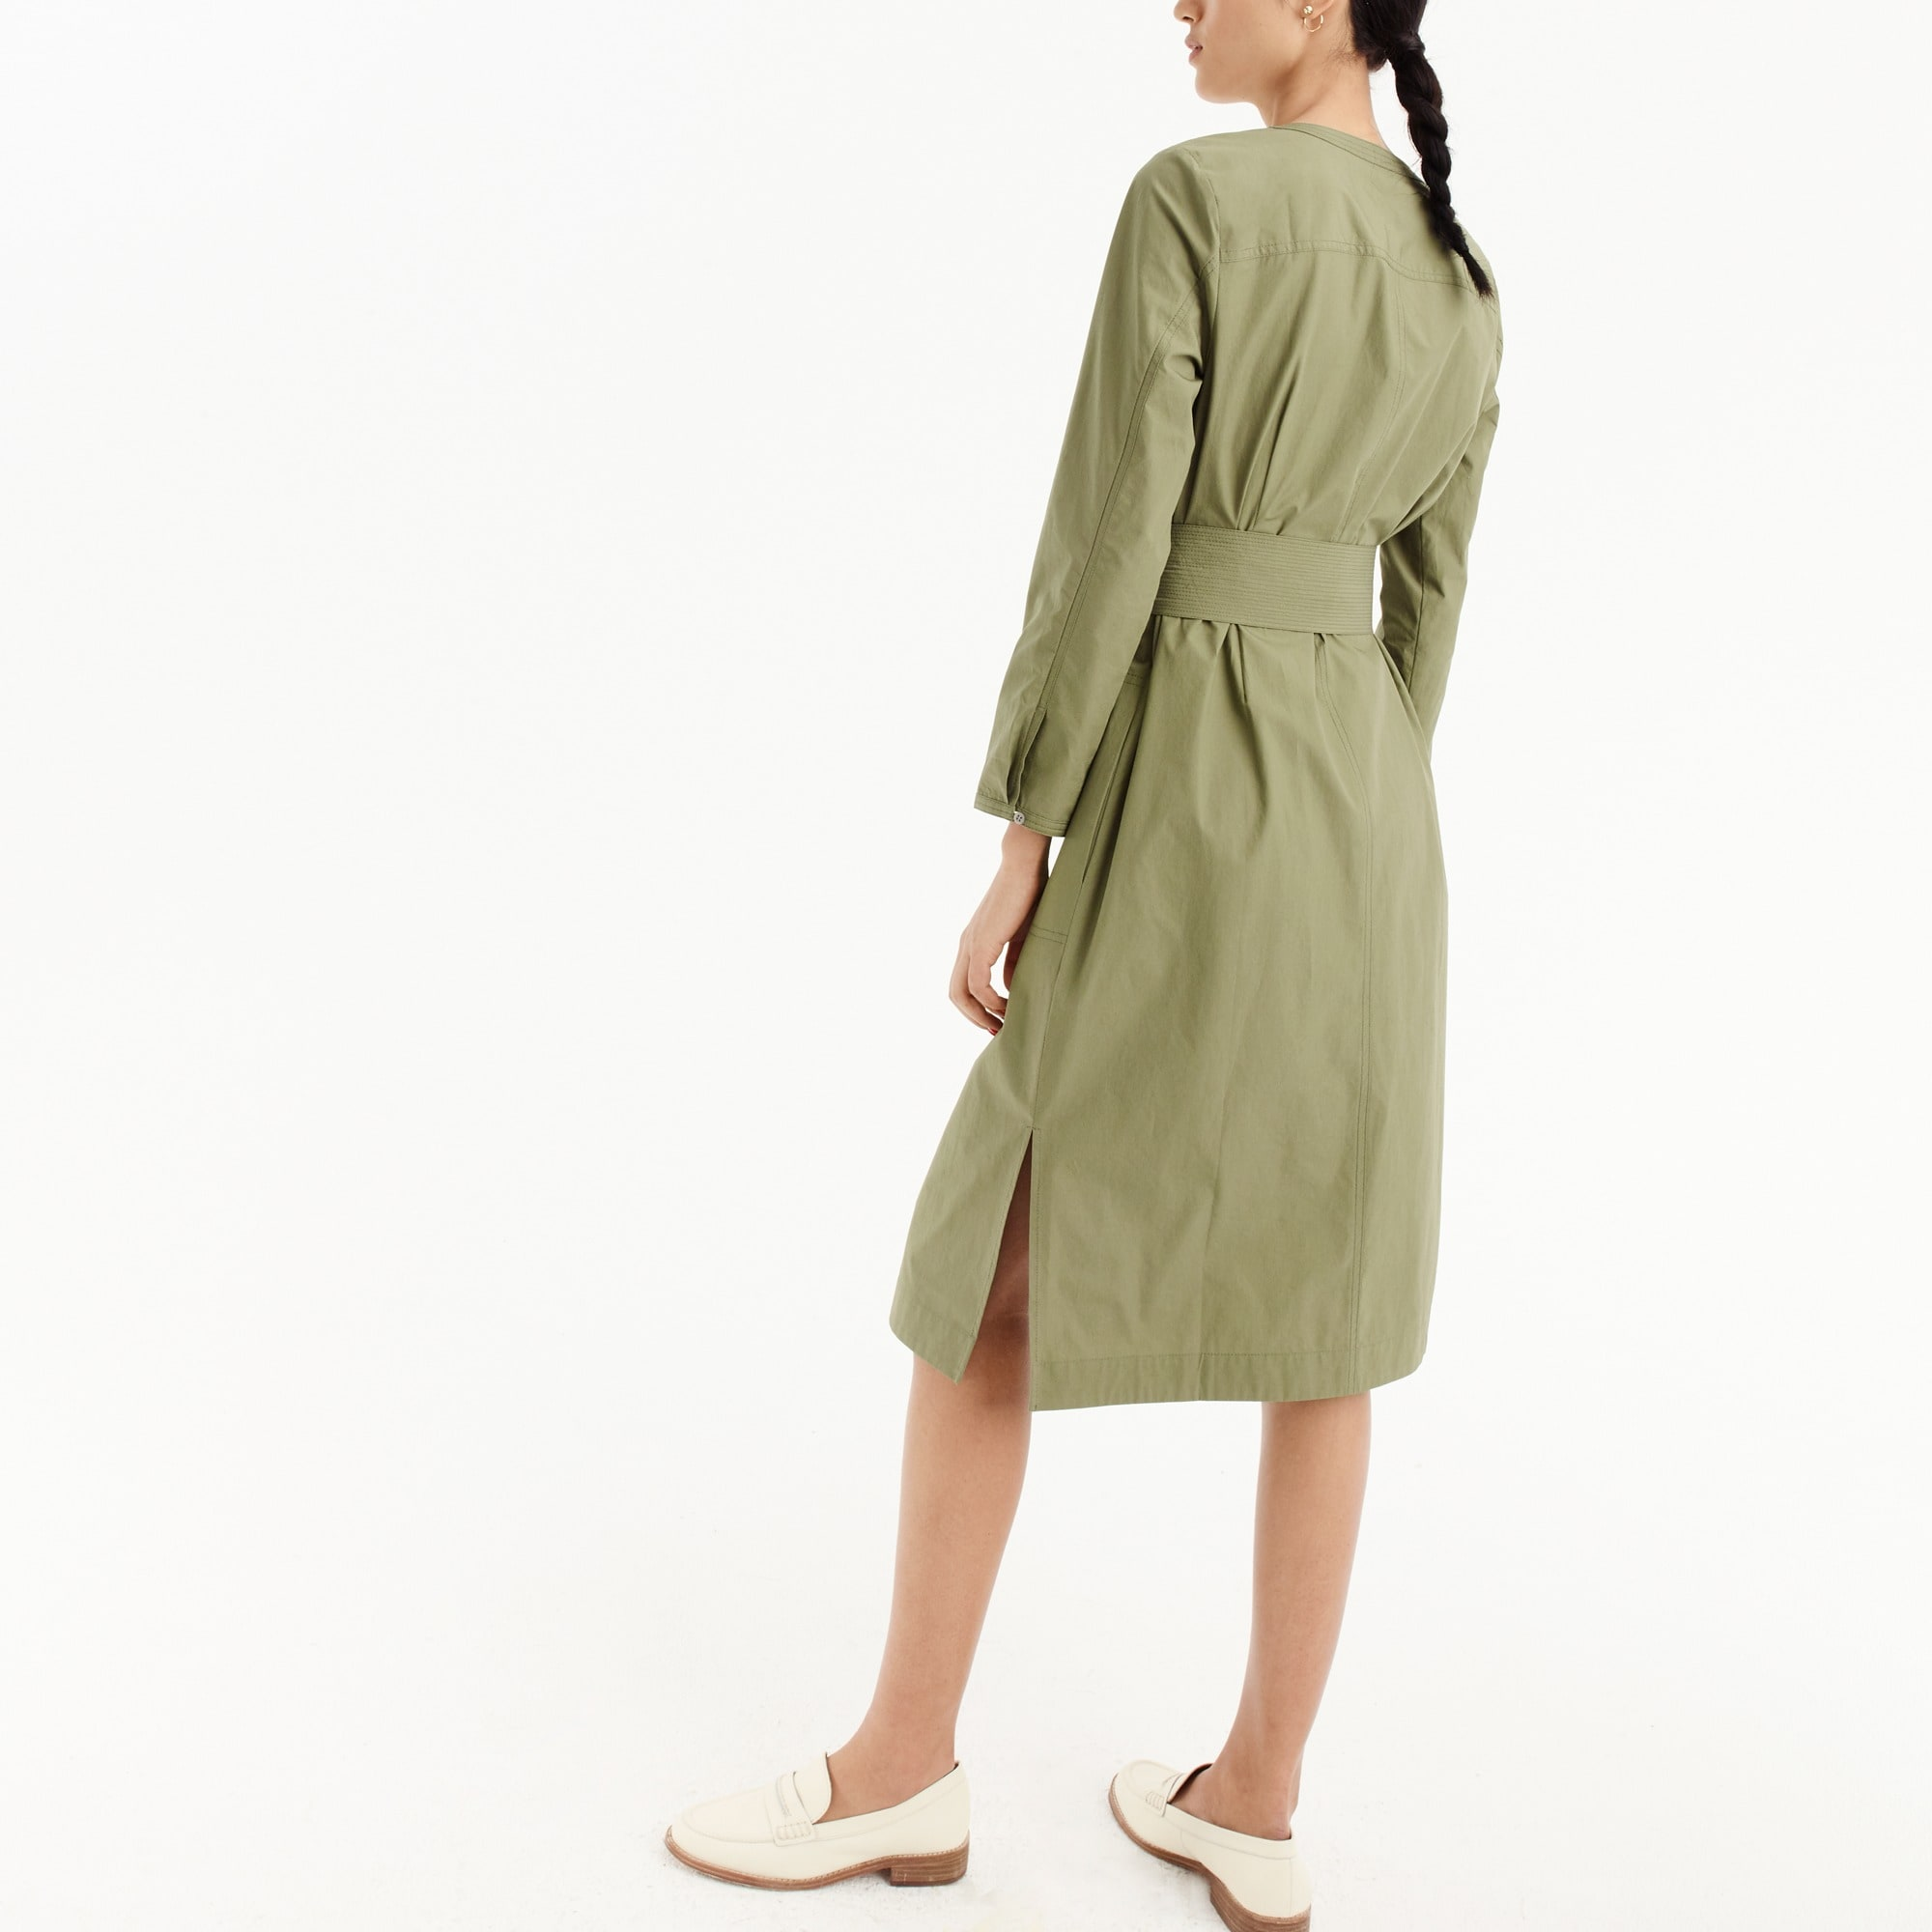 Image 4 for Petite long-sleeve shirtdress